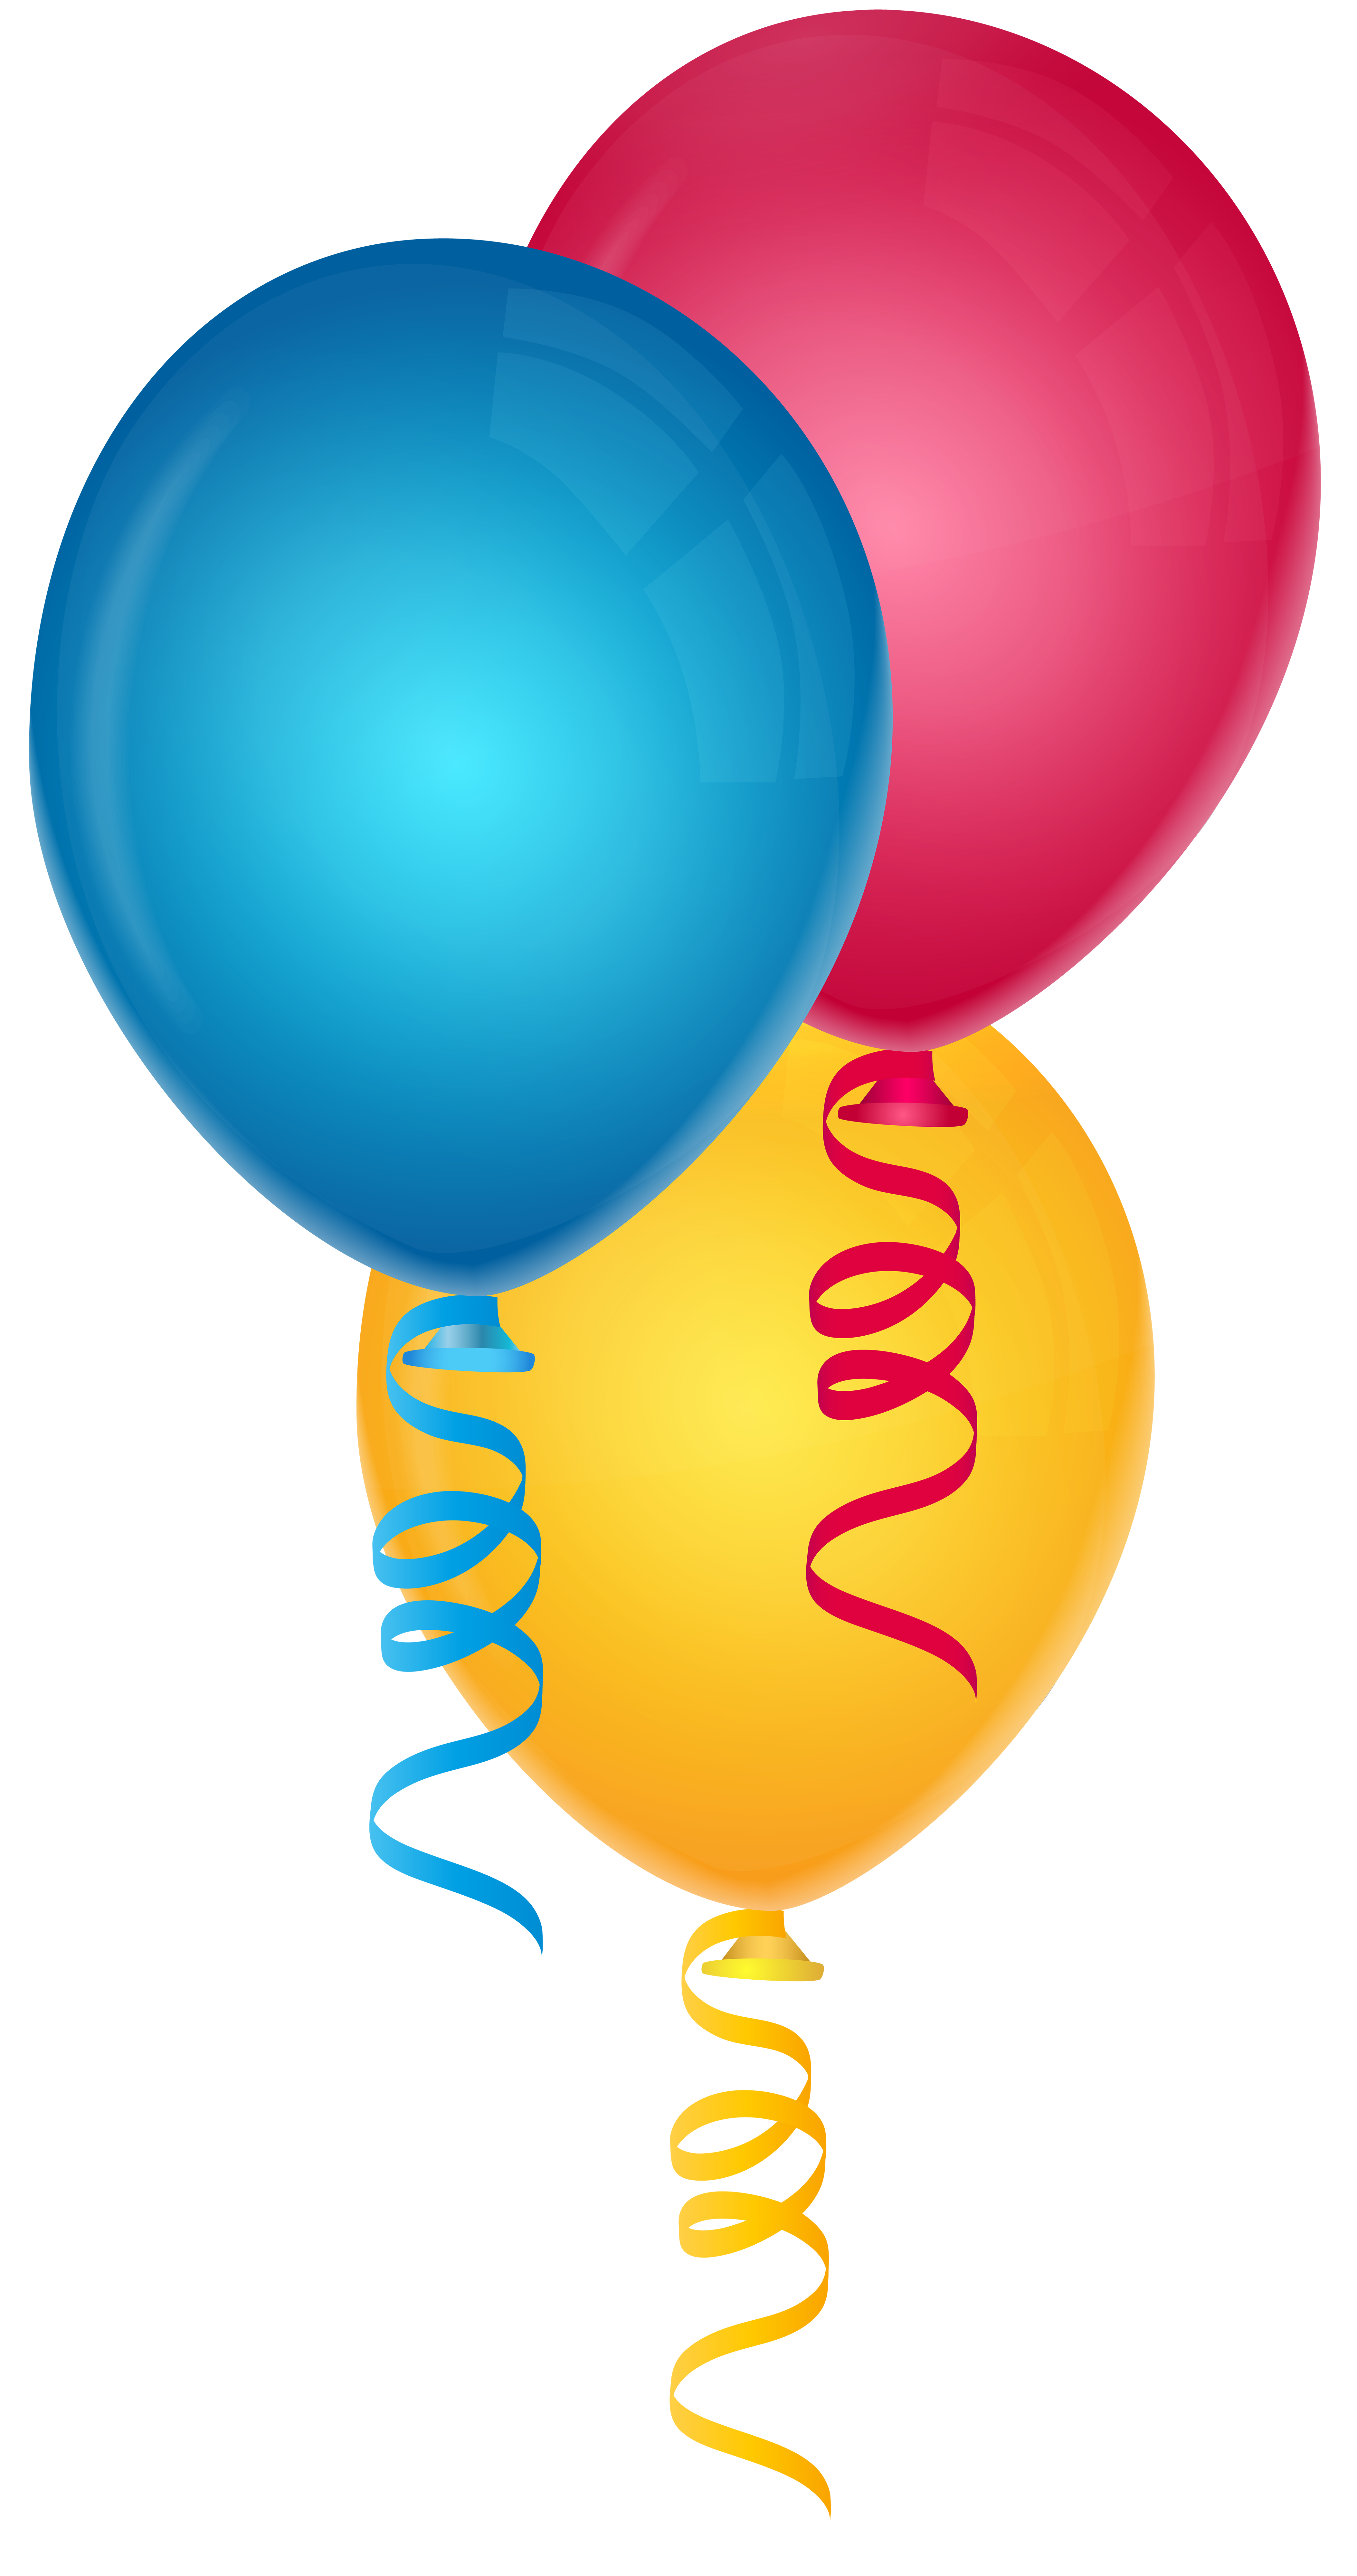 Three Balloons Png Clipart Gallery Yopriceville High Quality Images And Transparent Png Free Clipart Balloons Clip Art Free Clip Art